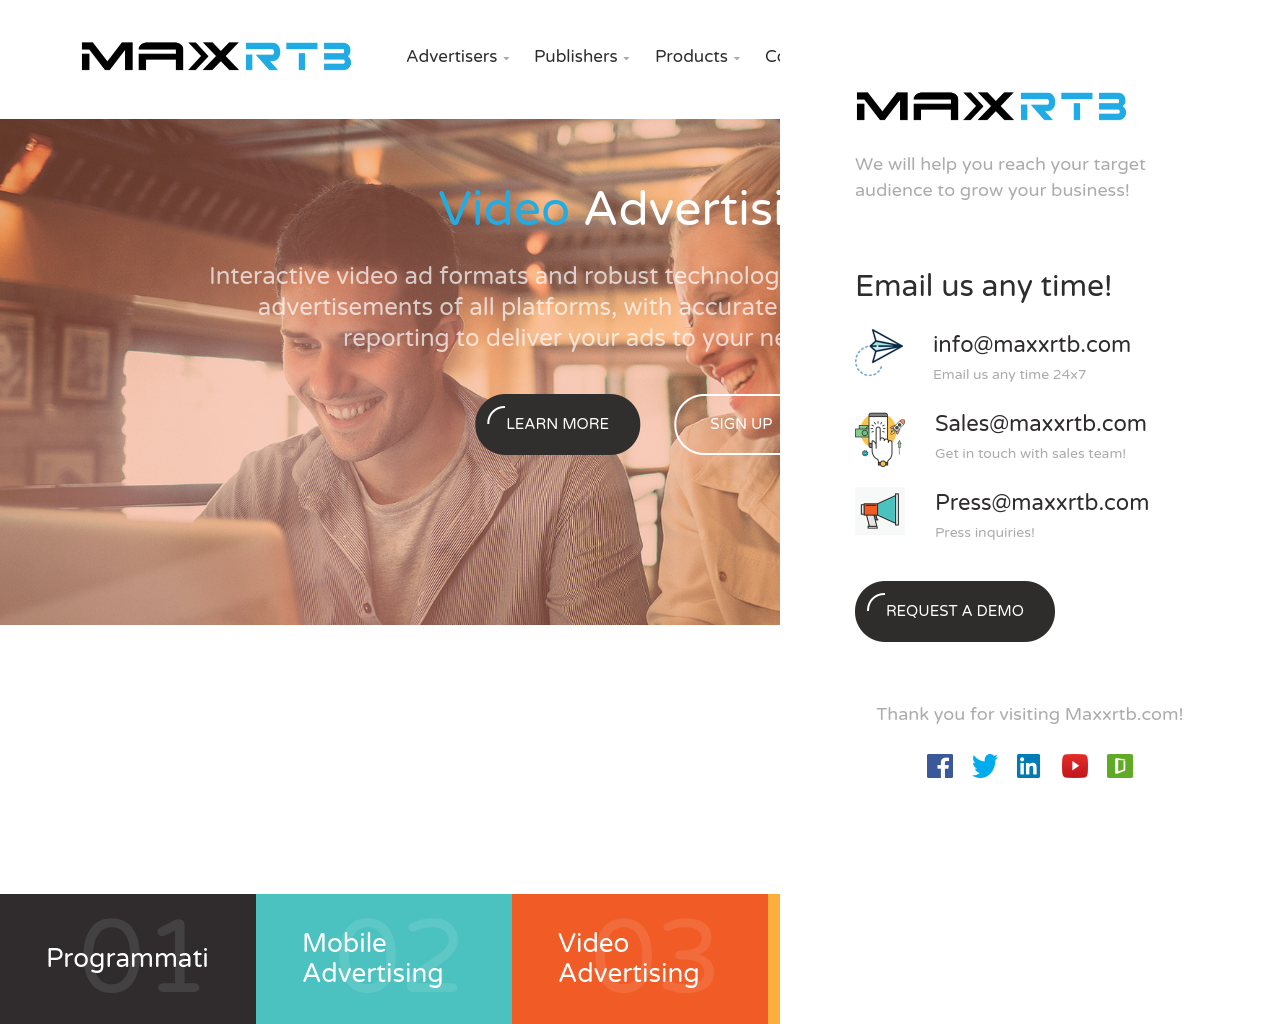 MaxxRTB-Advertising-Reviews-Pricing